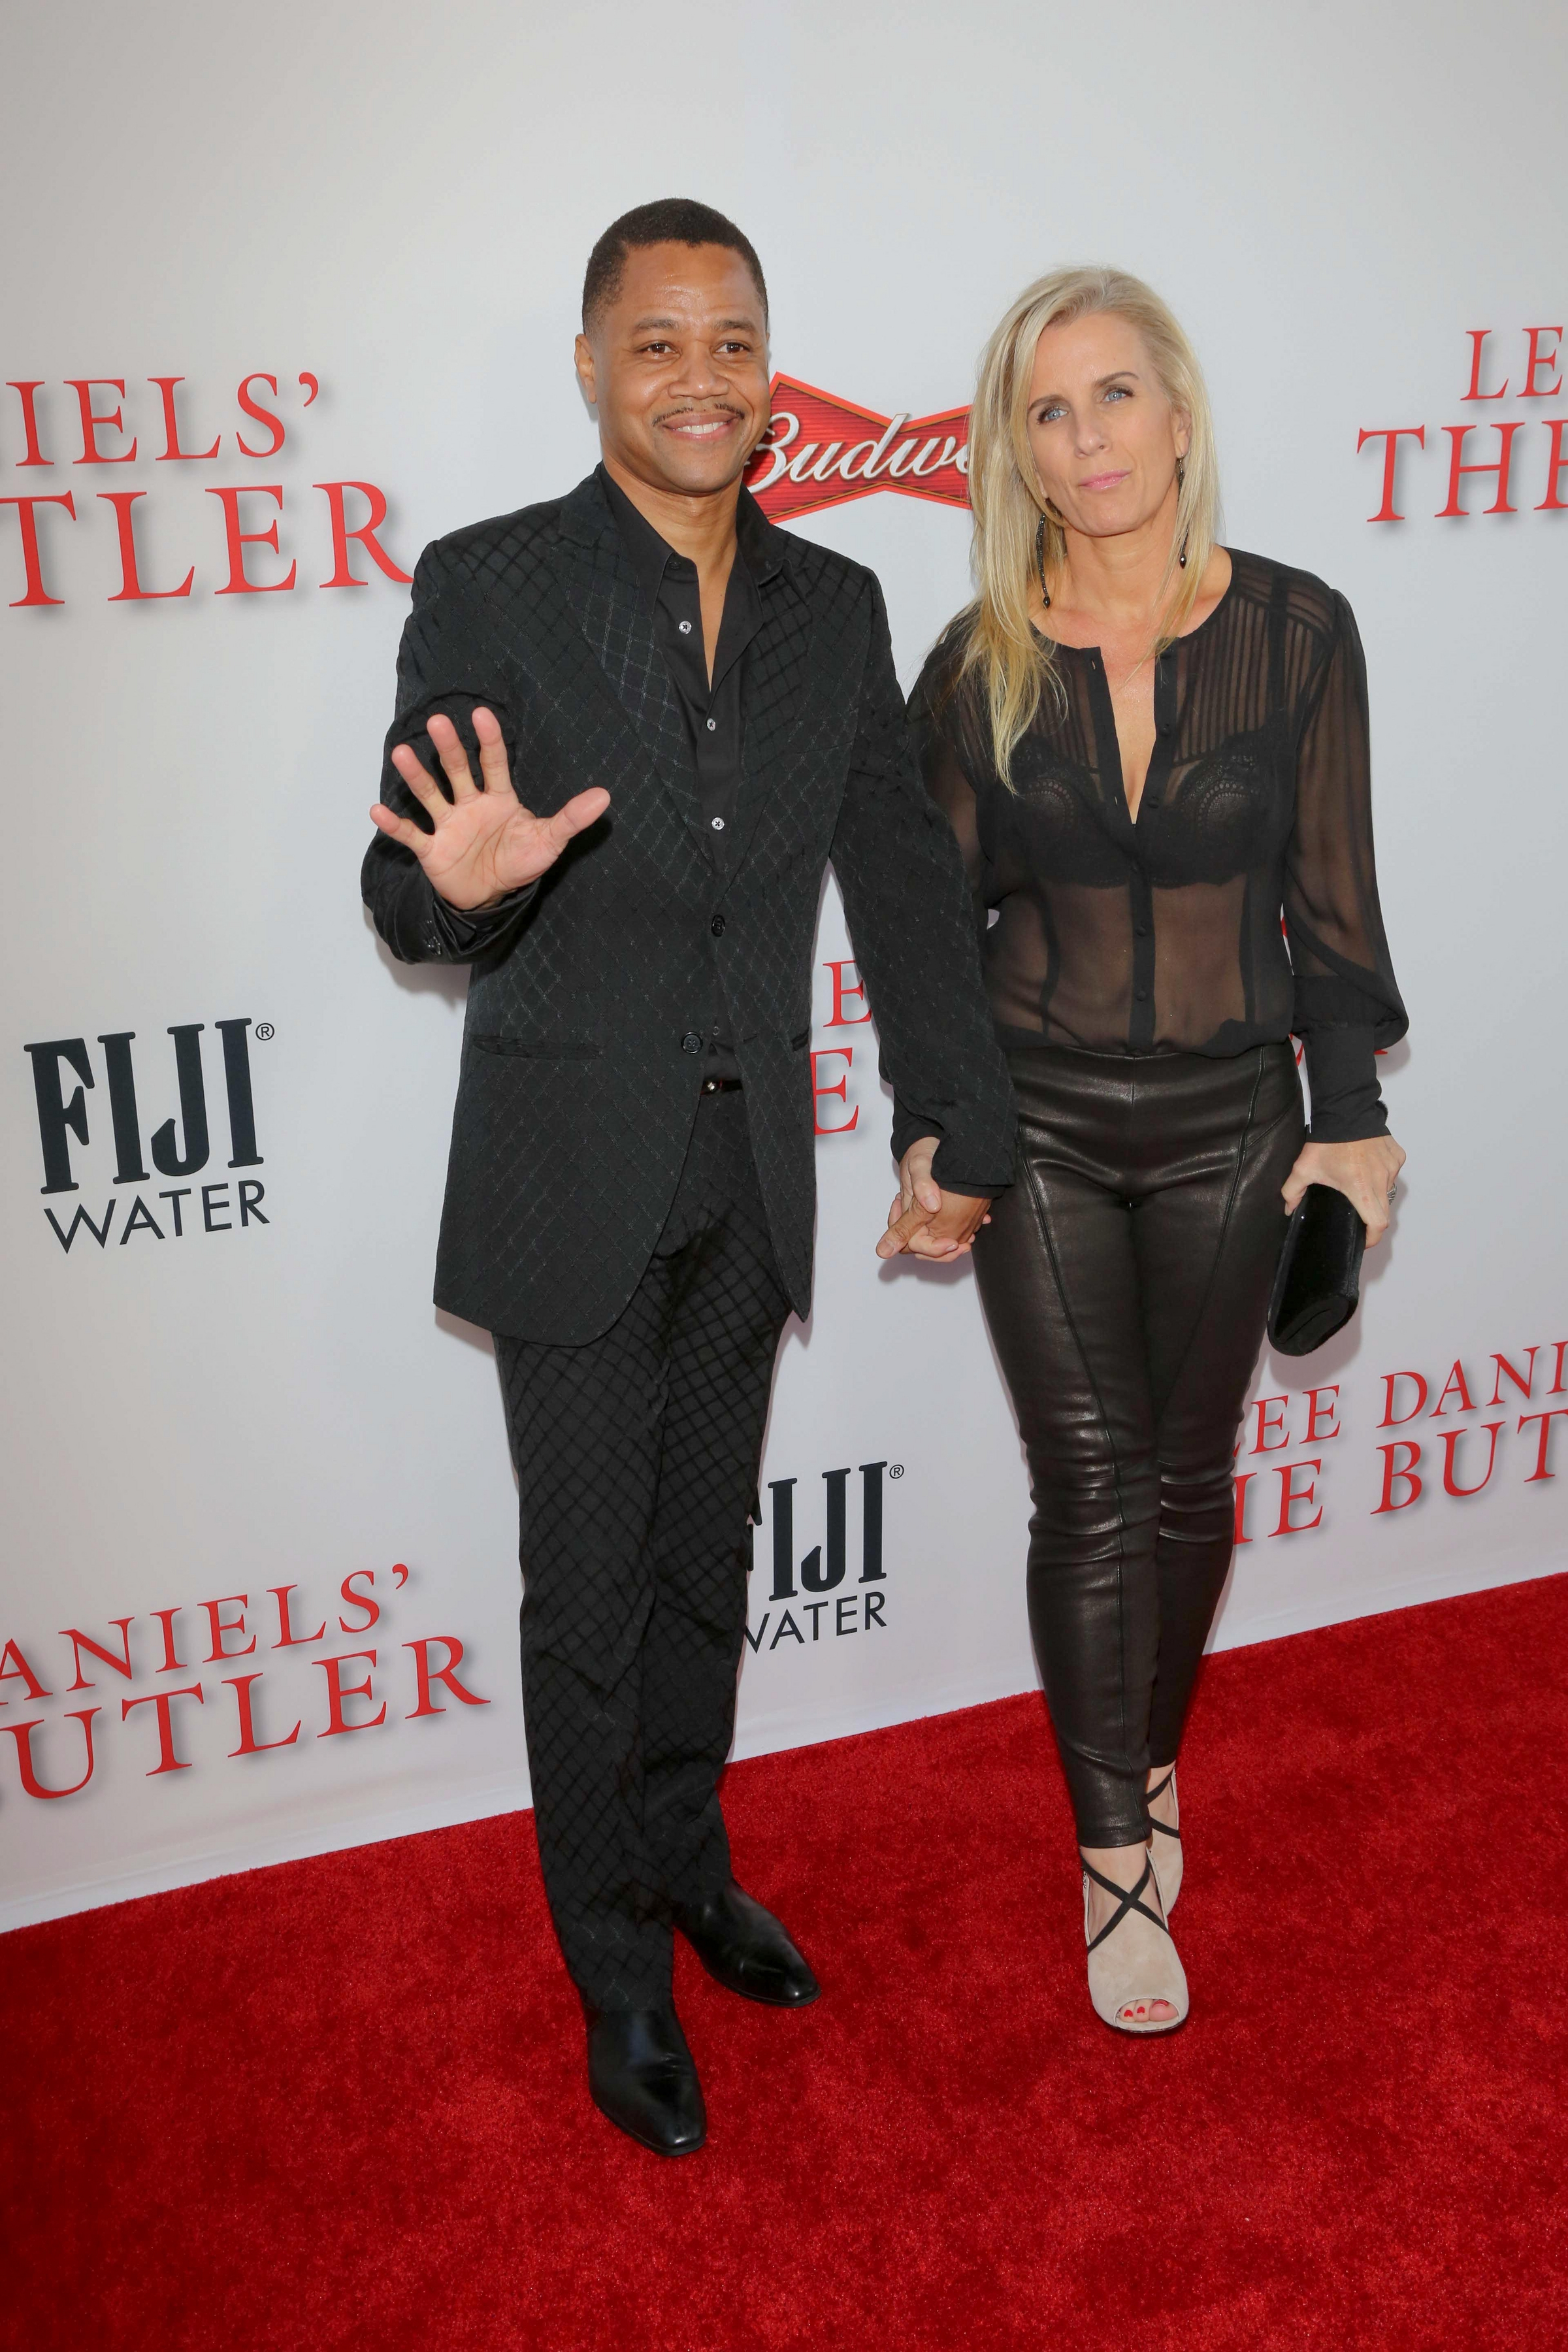 """08/12/2013 - Cuba Gooding Jr. and wife Sara Kapfer - """"The Butler"""" Los Angeles Premiere - Arrivals - Regal Cinemas L.A. Live - Los Angeles, CA, USA - Keywords: LEE DANIELS' """"THE BUTLER"""" Los Angeles Premiere red carpet Arrivals, Hosted by TWC, Budweiser, FIJI Water, Purity Vodka, Stack Wines Orientation: Portrait Face Count: 1 - False - Photo Credit: Andrew Evans / PR Photos - Contact (1-866-551-7827) - Portrait Face Count: 1"""